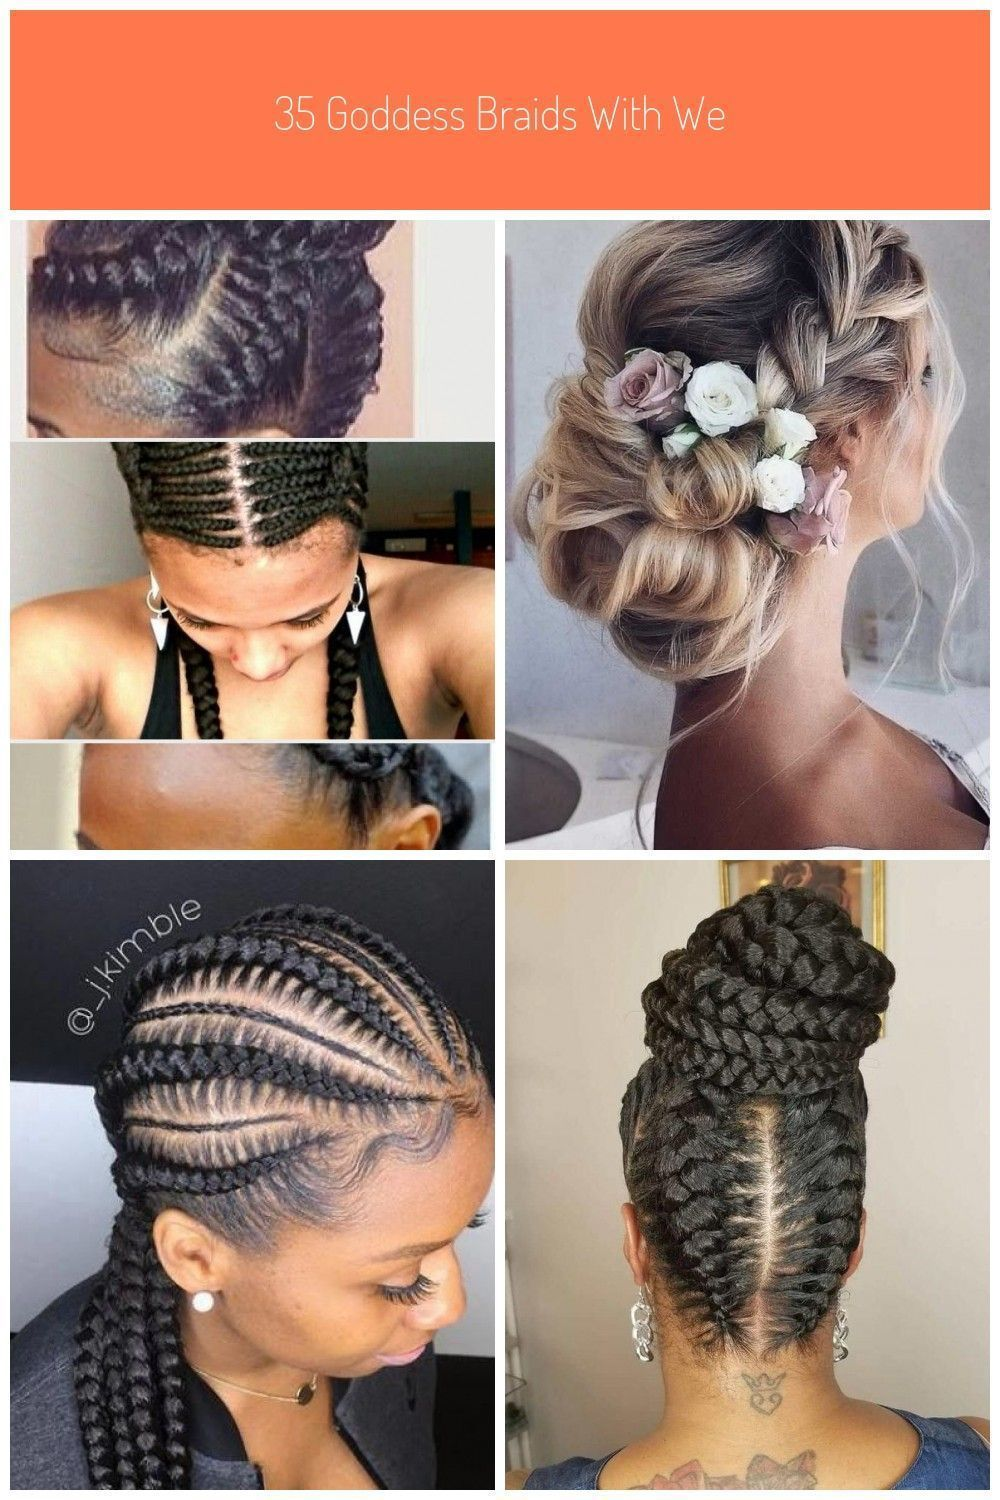 35 Goddess Braids With Weave Hairstyles In 2019 Summer Braids Weavehairstylesdyed Weavehairstylesvideos Str In 2020 Braids With Weave Weave Hairstyles Hair Styles